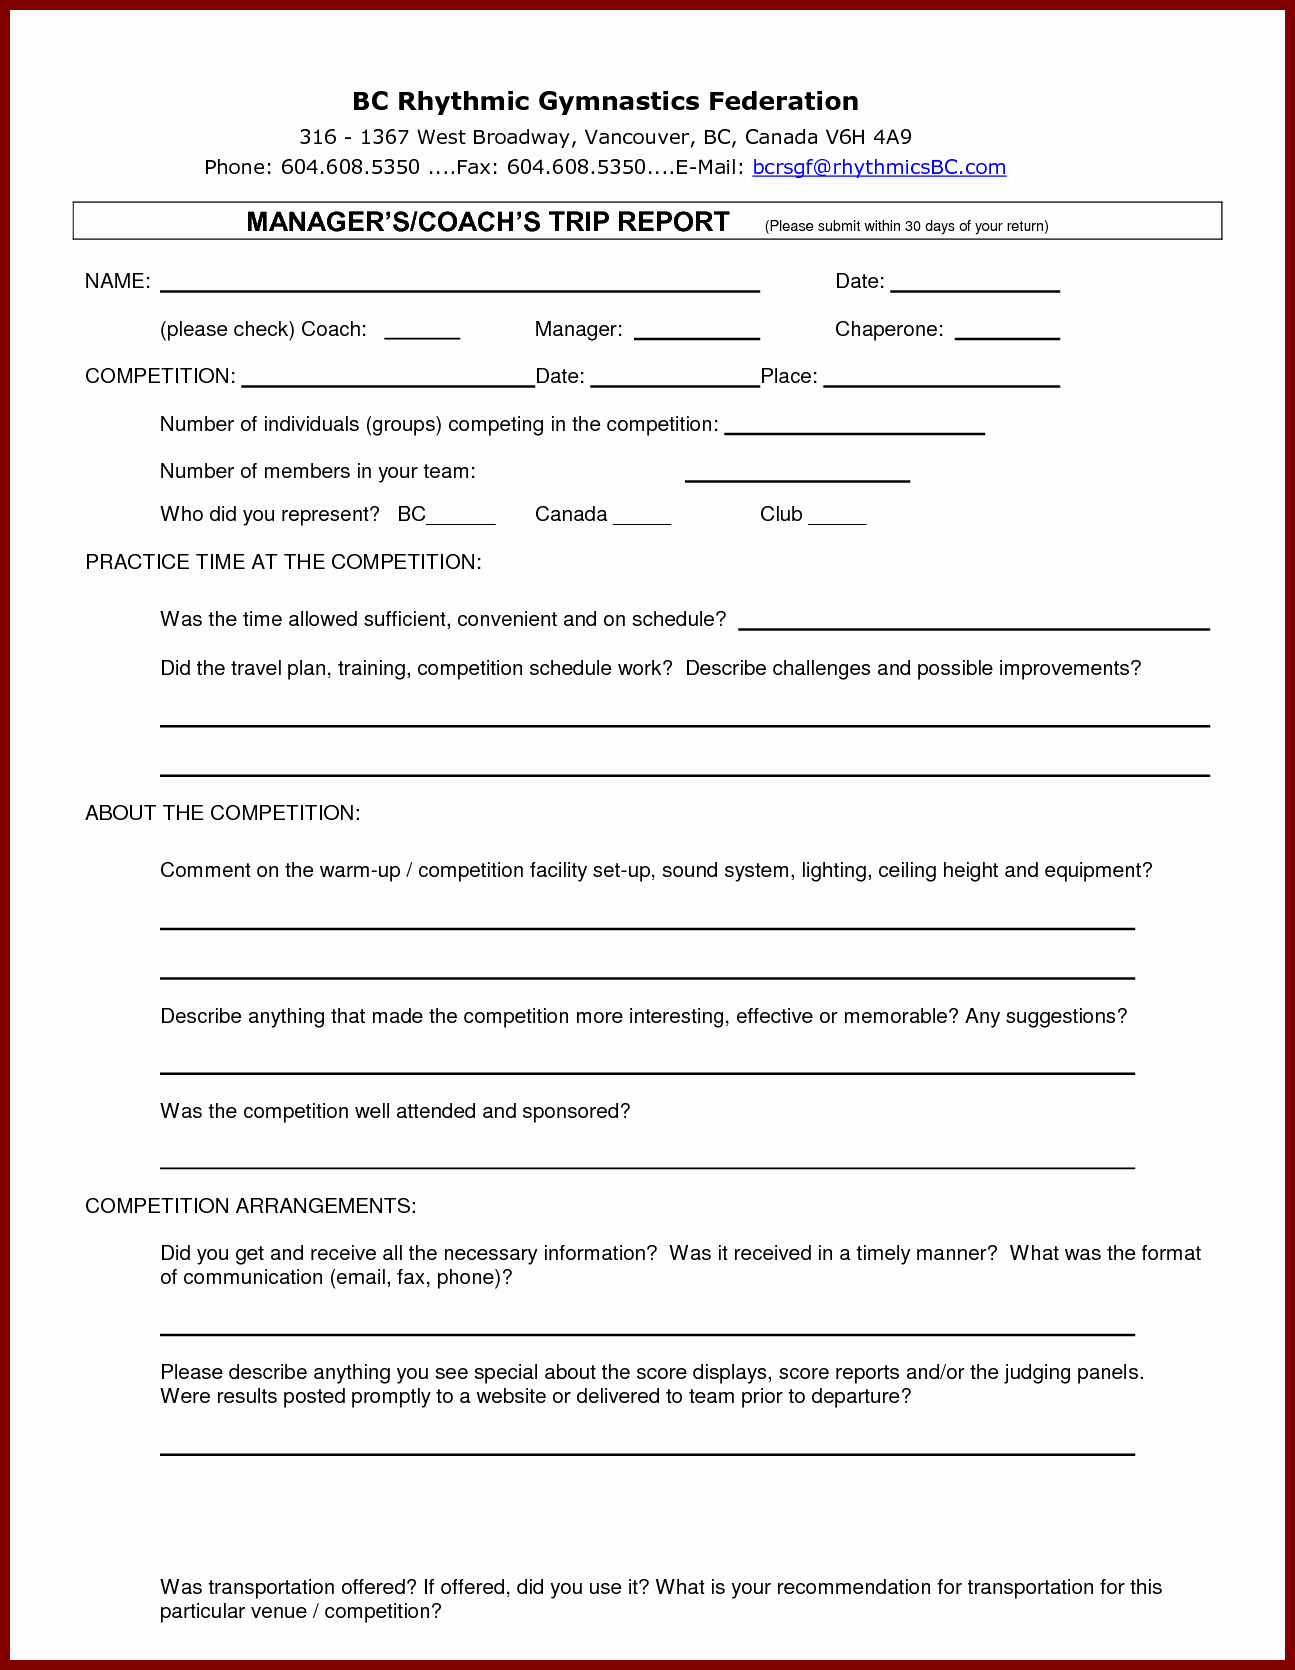 Customer Visit Report Template Free Download With Regard To Customer Visit Report Template Free Download